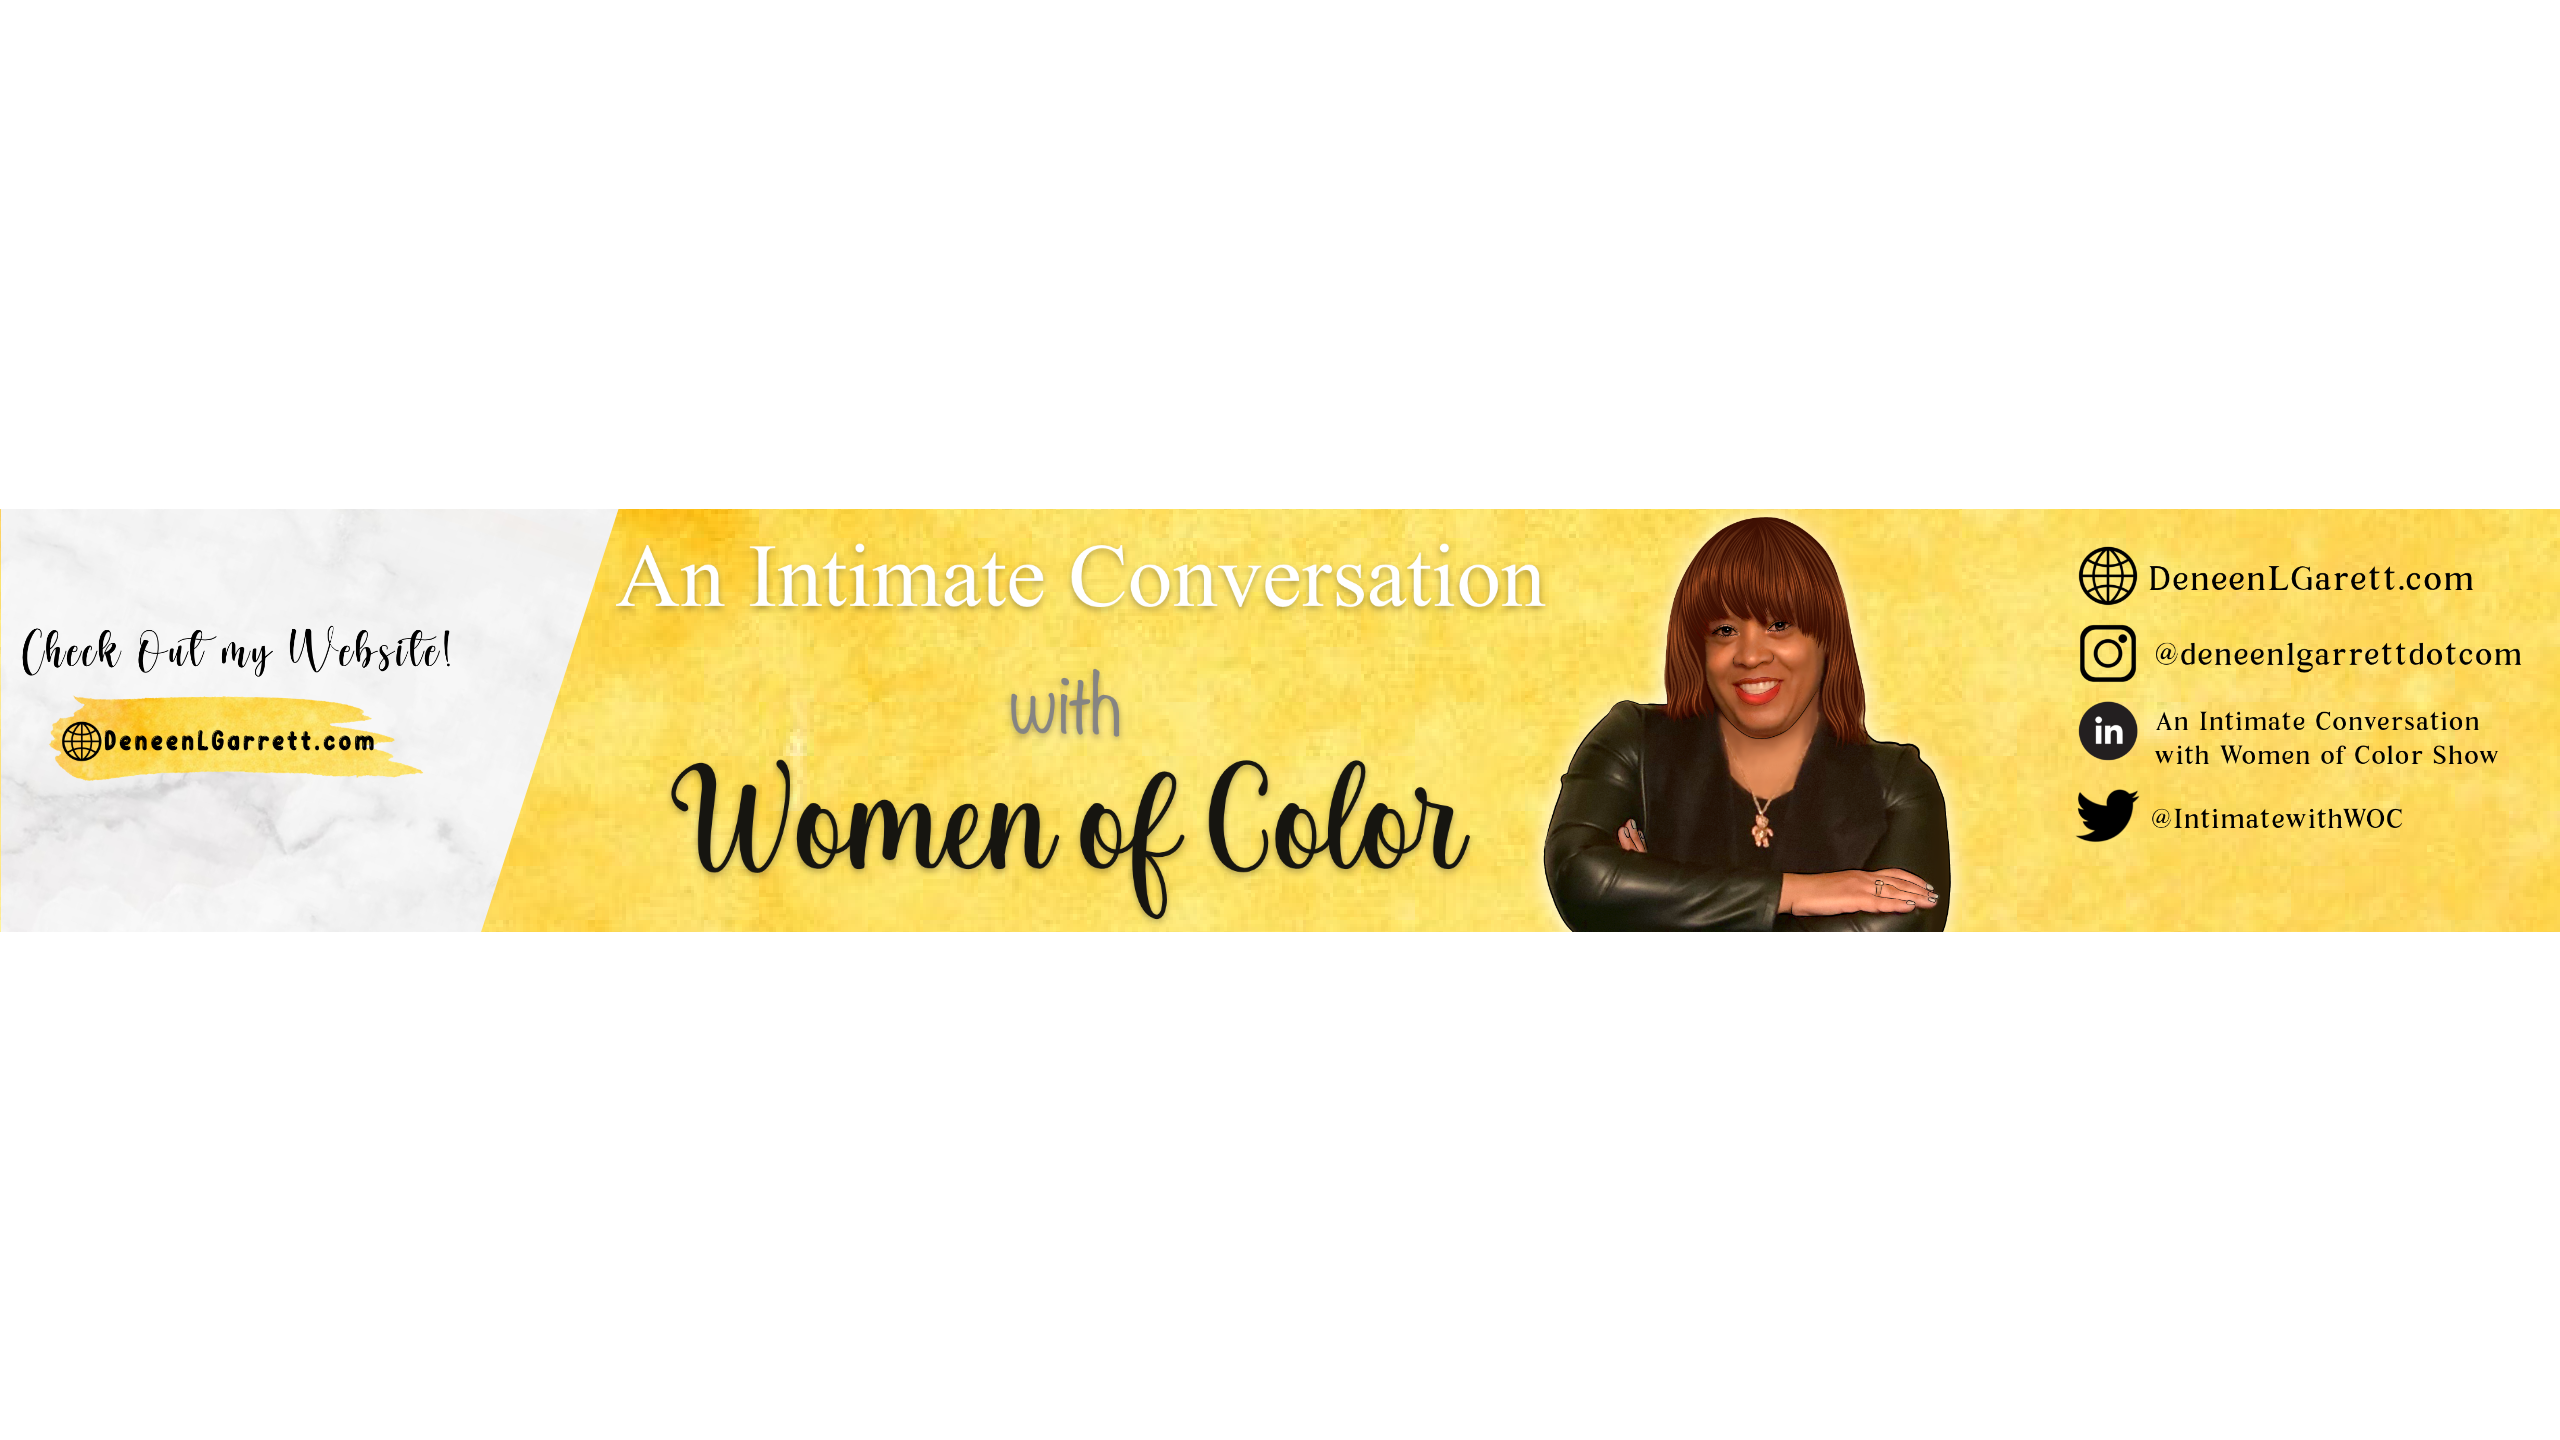 An Intimate Conversation with Women of Color Newsletter Signup